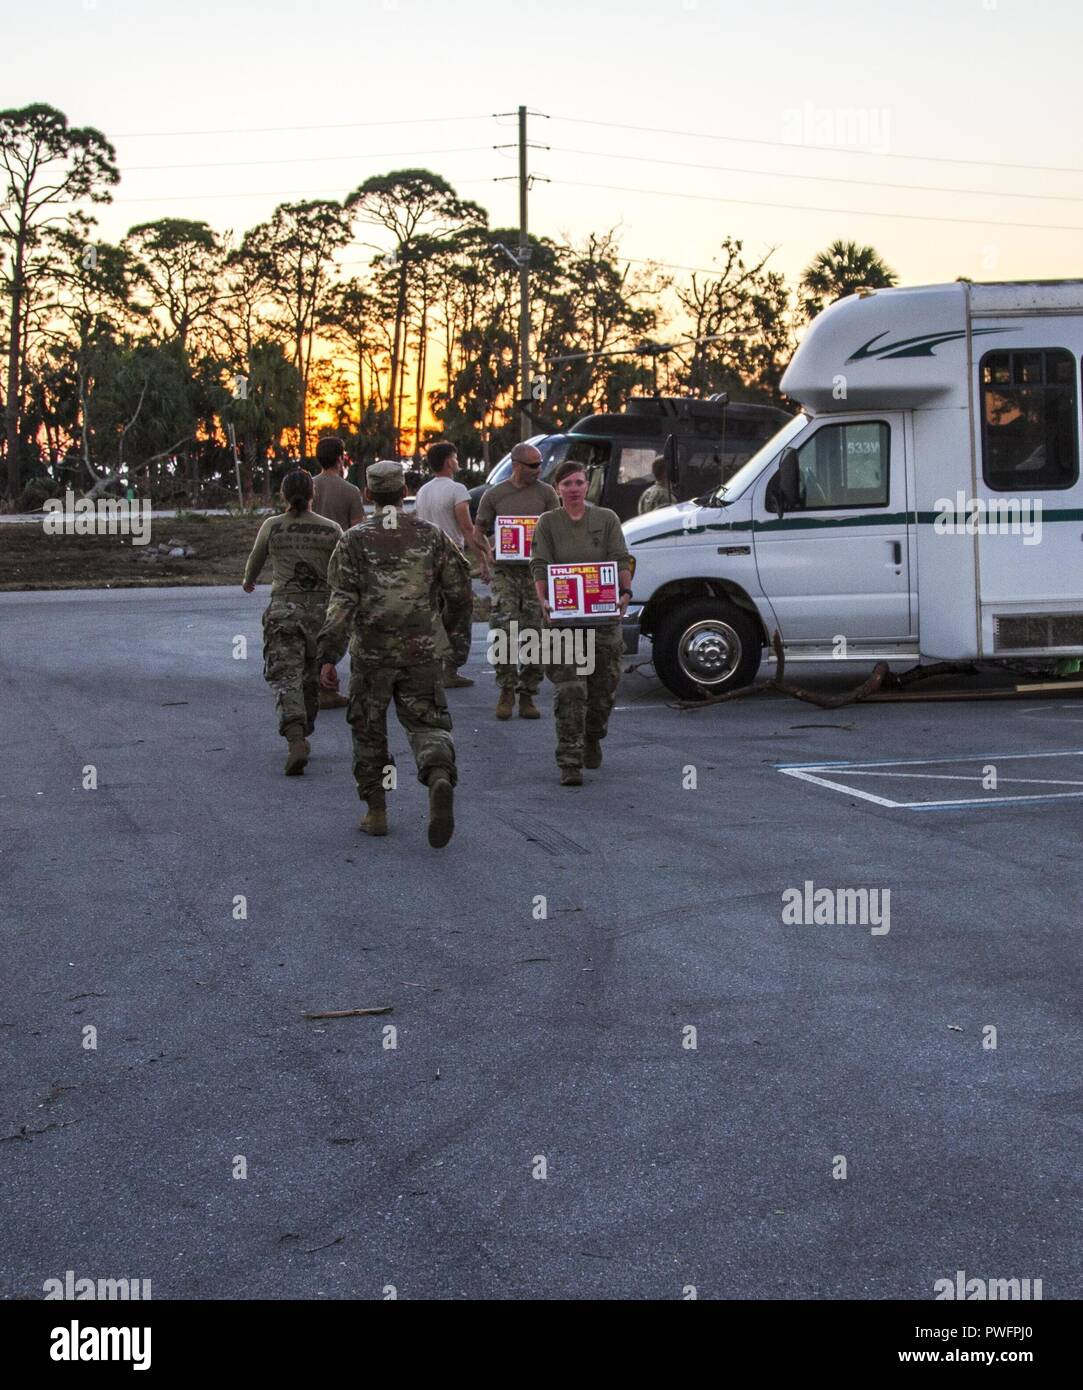 Members of the Florida National Guard's CERF-P (Chemical, Biological, Radiological, Nuclear and high-yield Explosive (CBRNE) Enhanced Response Force Package) unit offload supplies that need to be replenished as they continue their hurricane relief efforts in Florida's panhandle, Oct. 13, 2018, October 13, 2018. Hurricane Michael decimated the panhandle as it made landfall, which left hundreds of thousands people without power, food or water. () - Stock Image